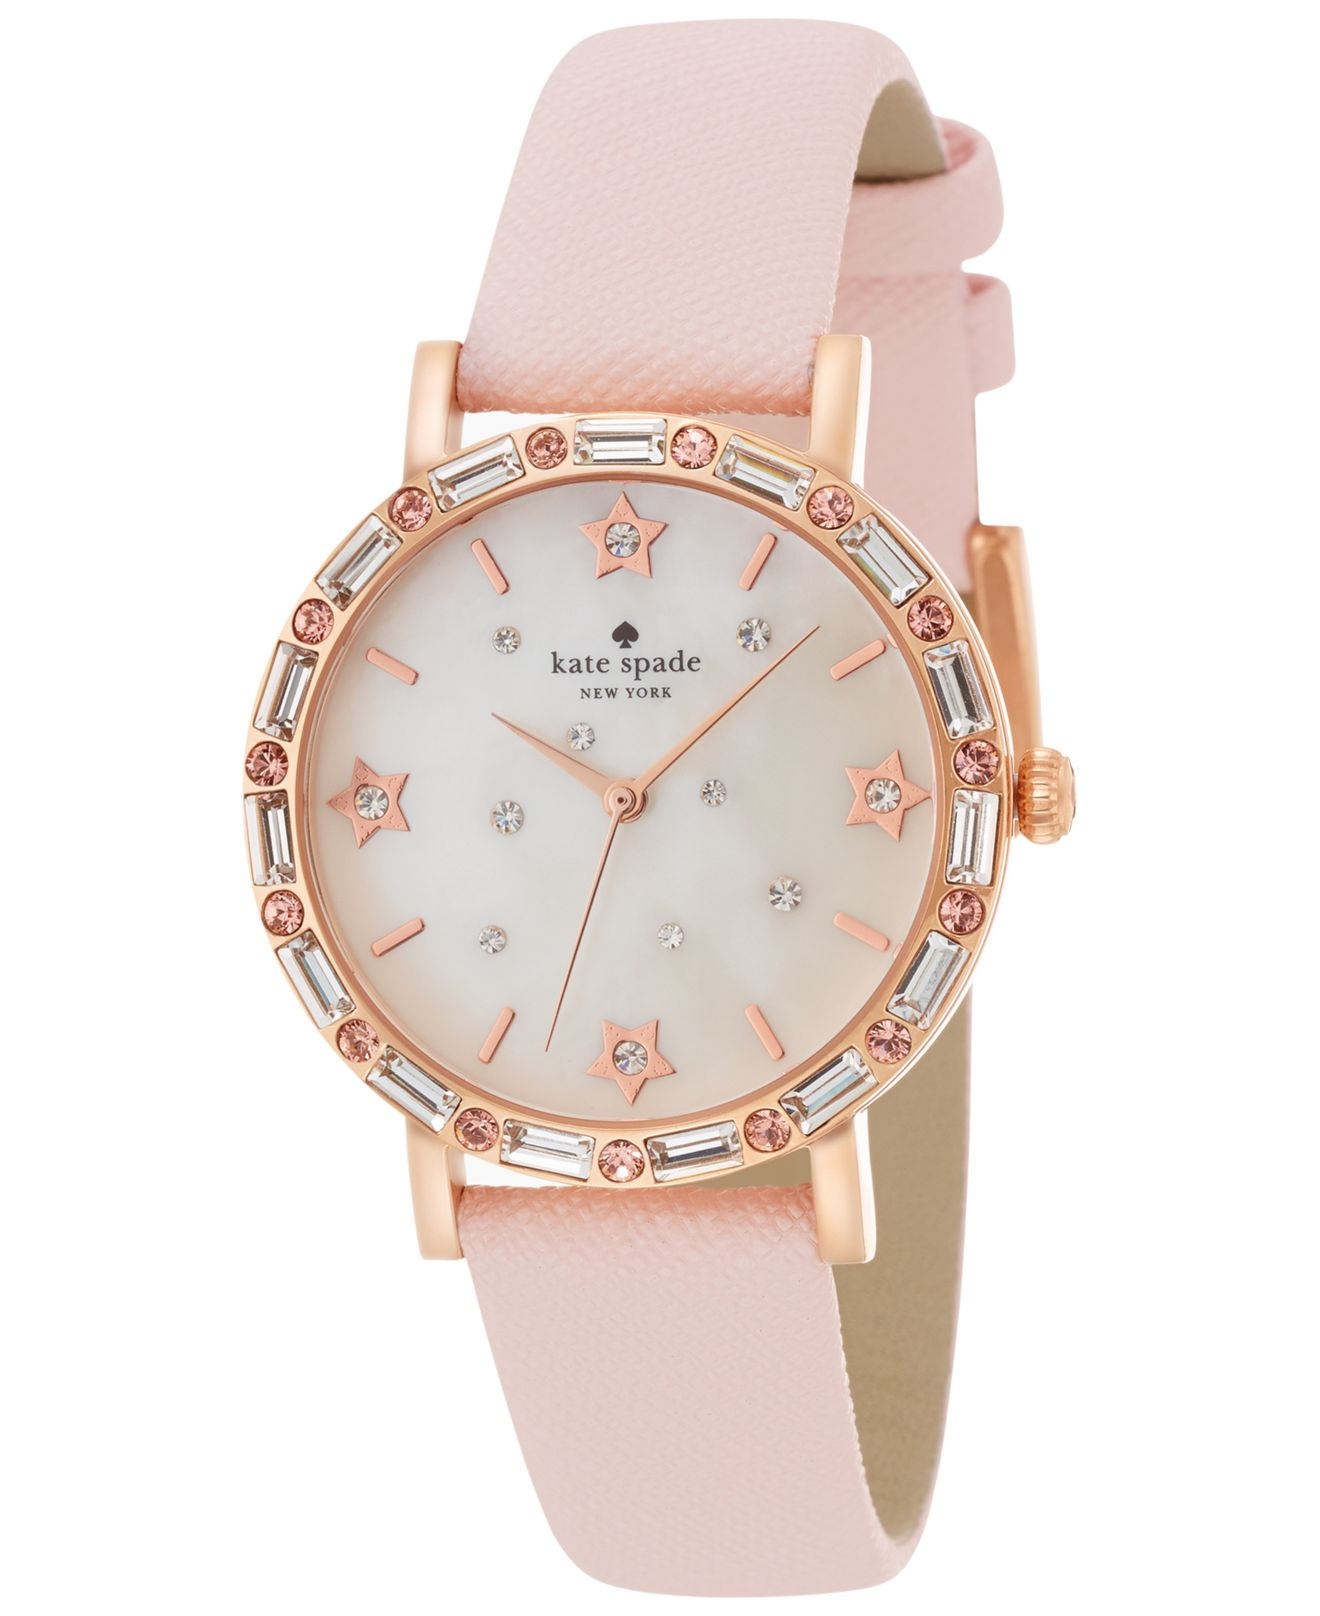 sales whole womens quartz sale color diamond mixed fashion pink watch women rbvaglvxoaqafxlvaaplfg on s candy product ladies silicone watches crystal gold girls vogue